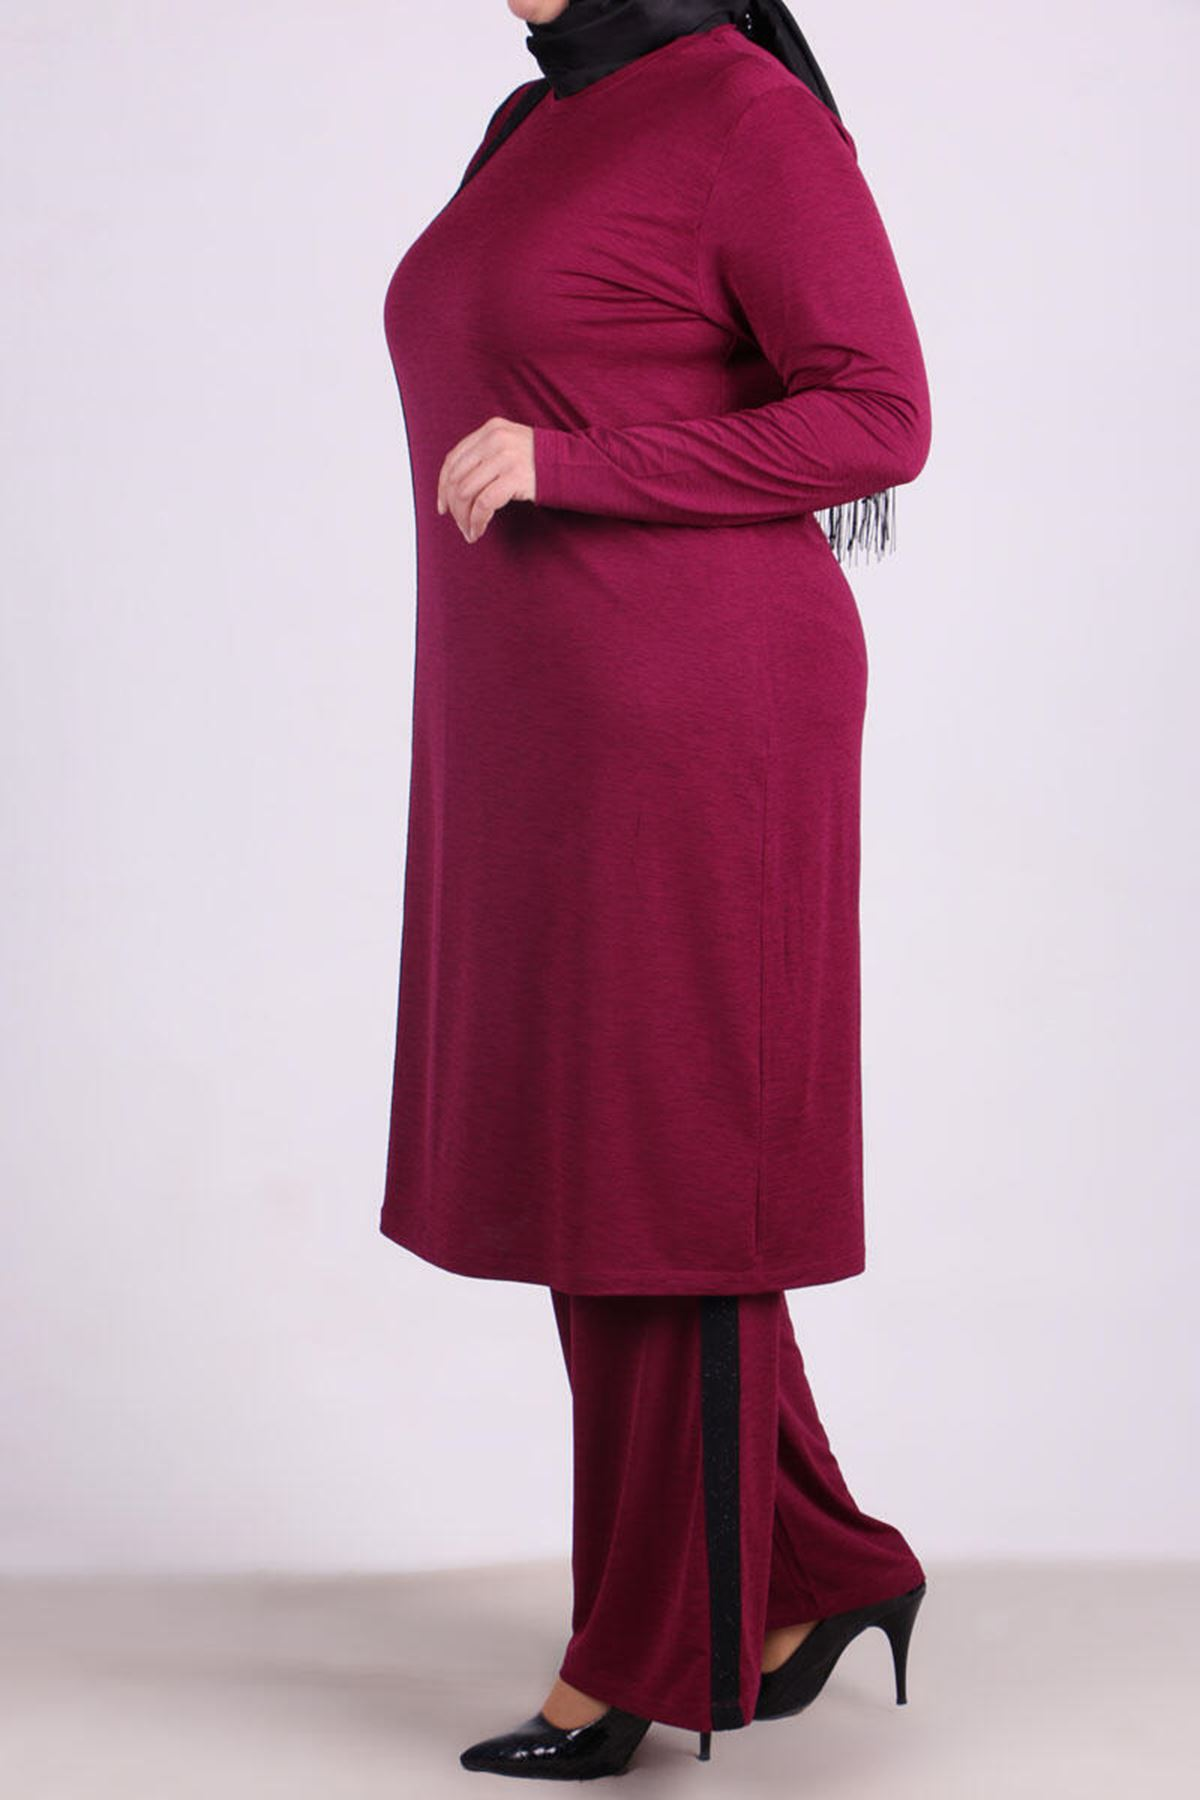 7683 Plus Size Two Piece Set with Tunic and Pants- Plum